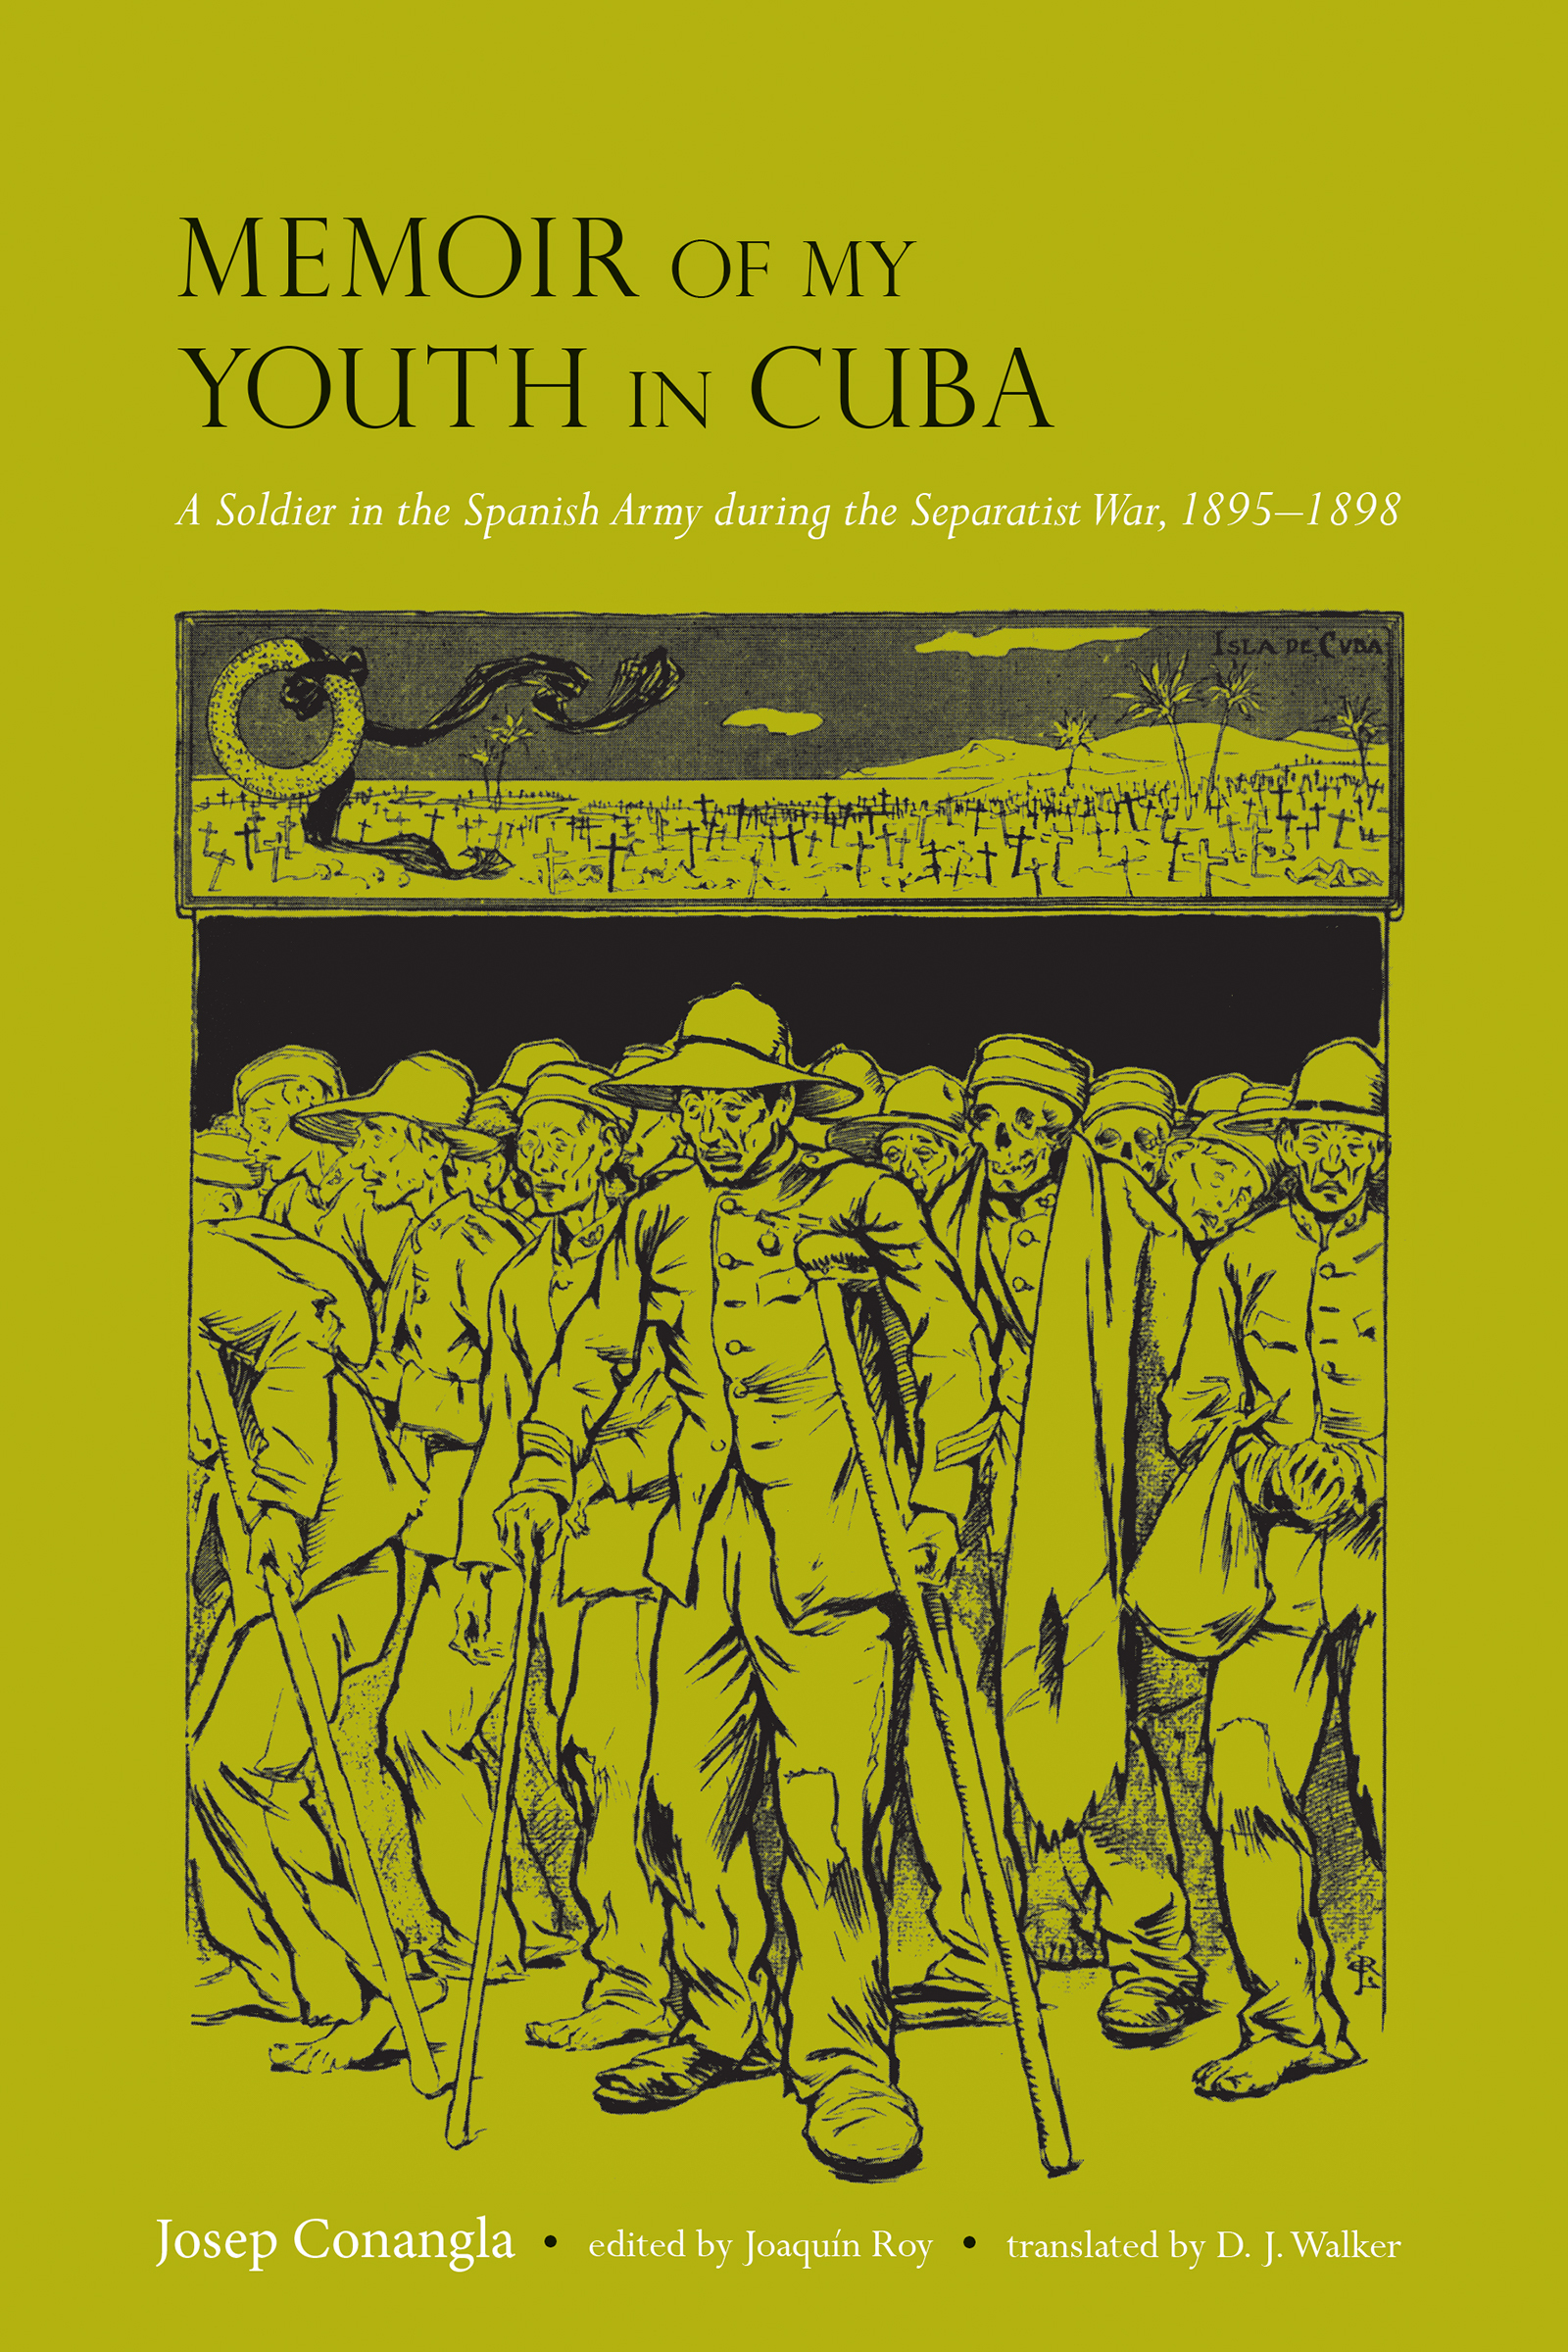 Memoir of My Youth in Cuba A Soldier in the Spanish Army during the Separatist War, 1895-1898